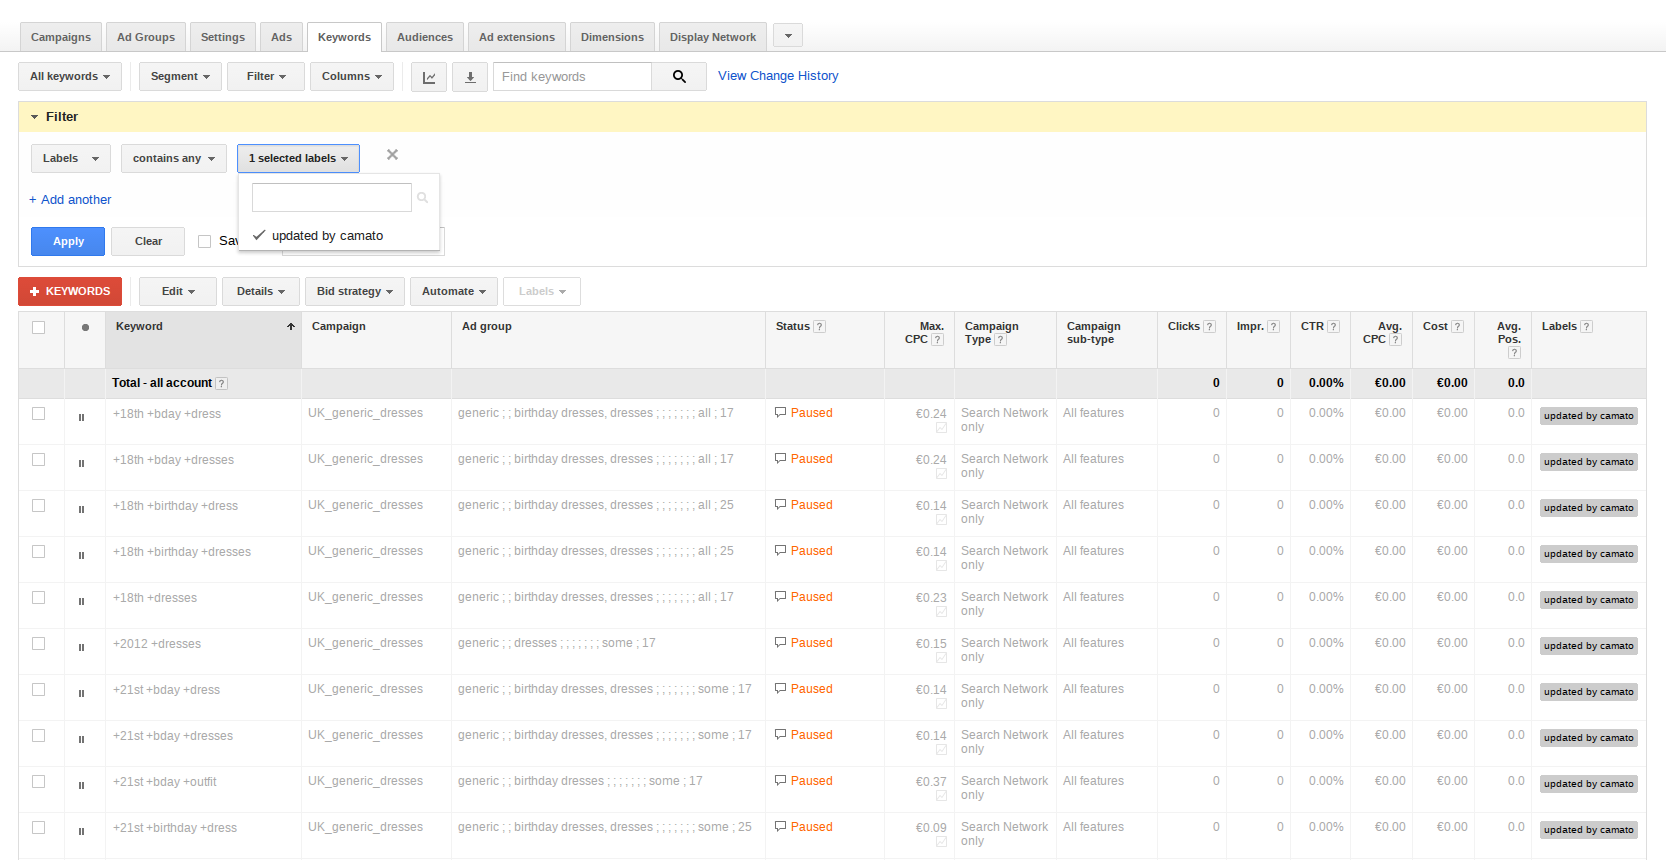 Adwords_Labels_Filtering